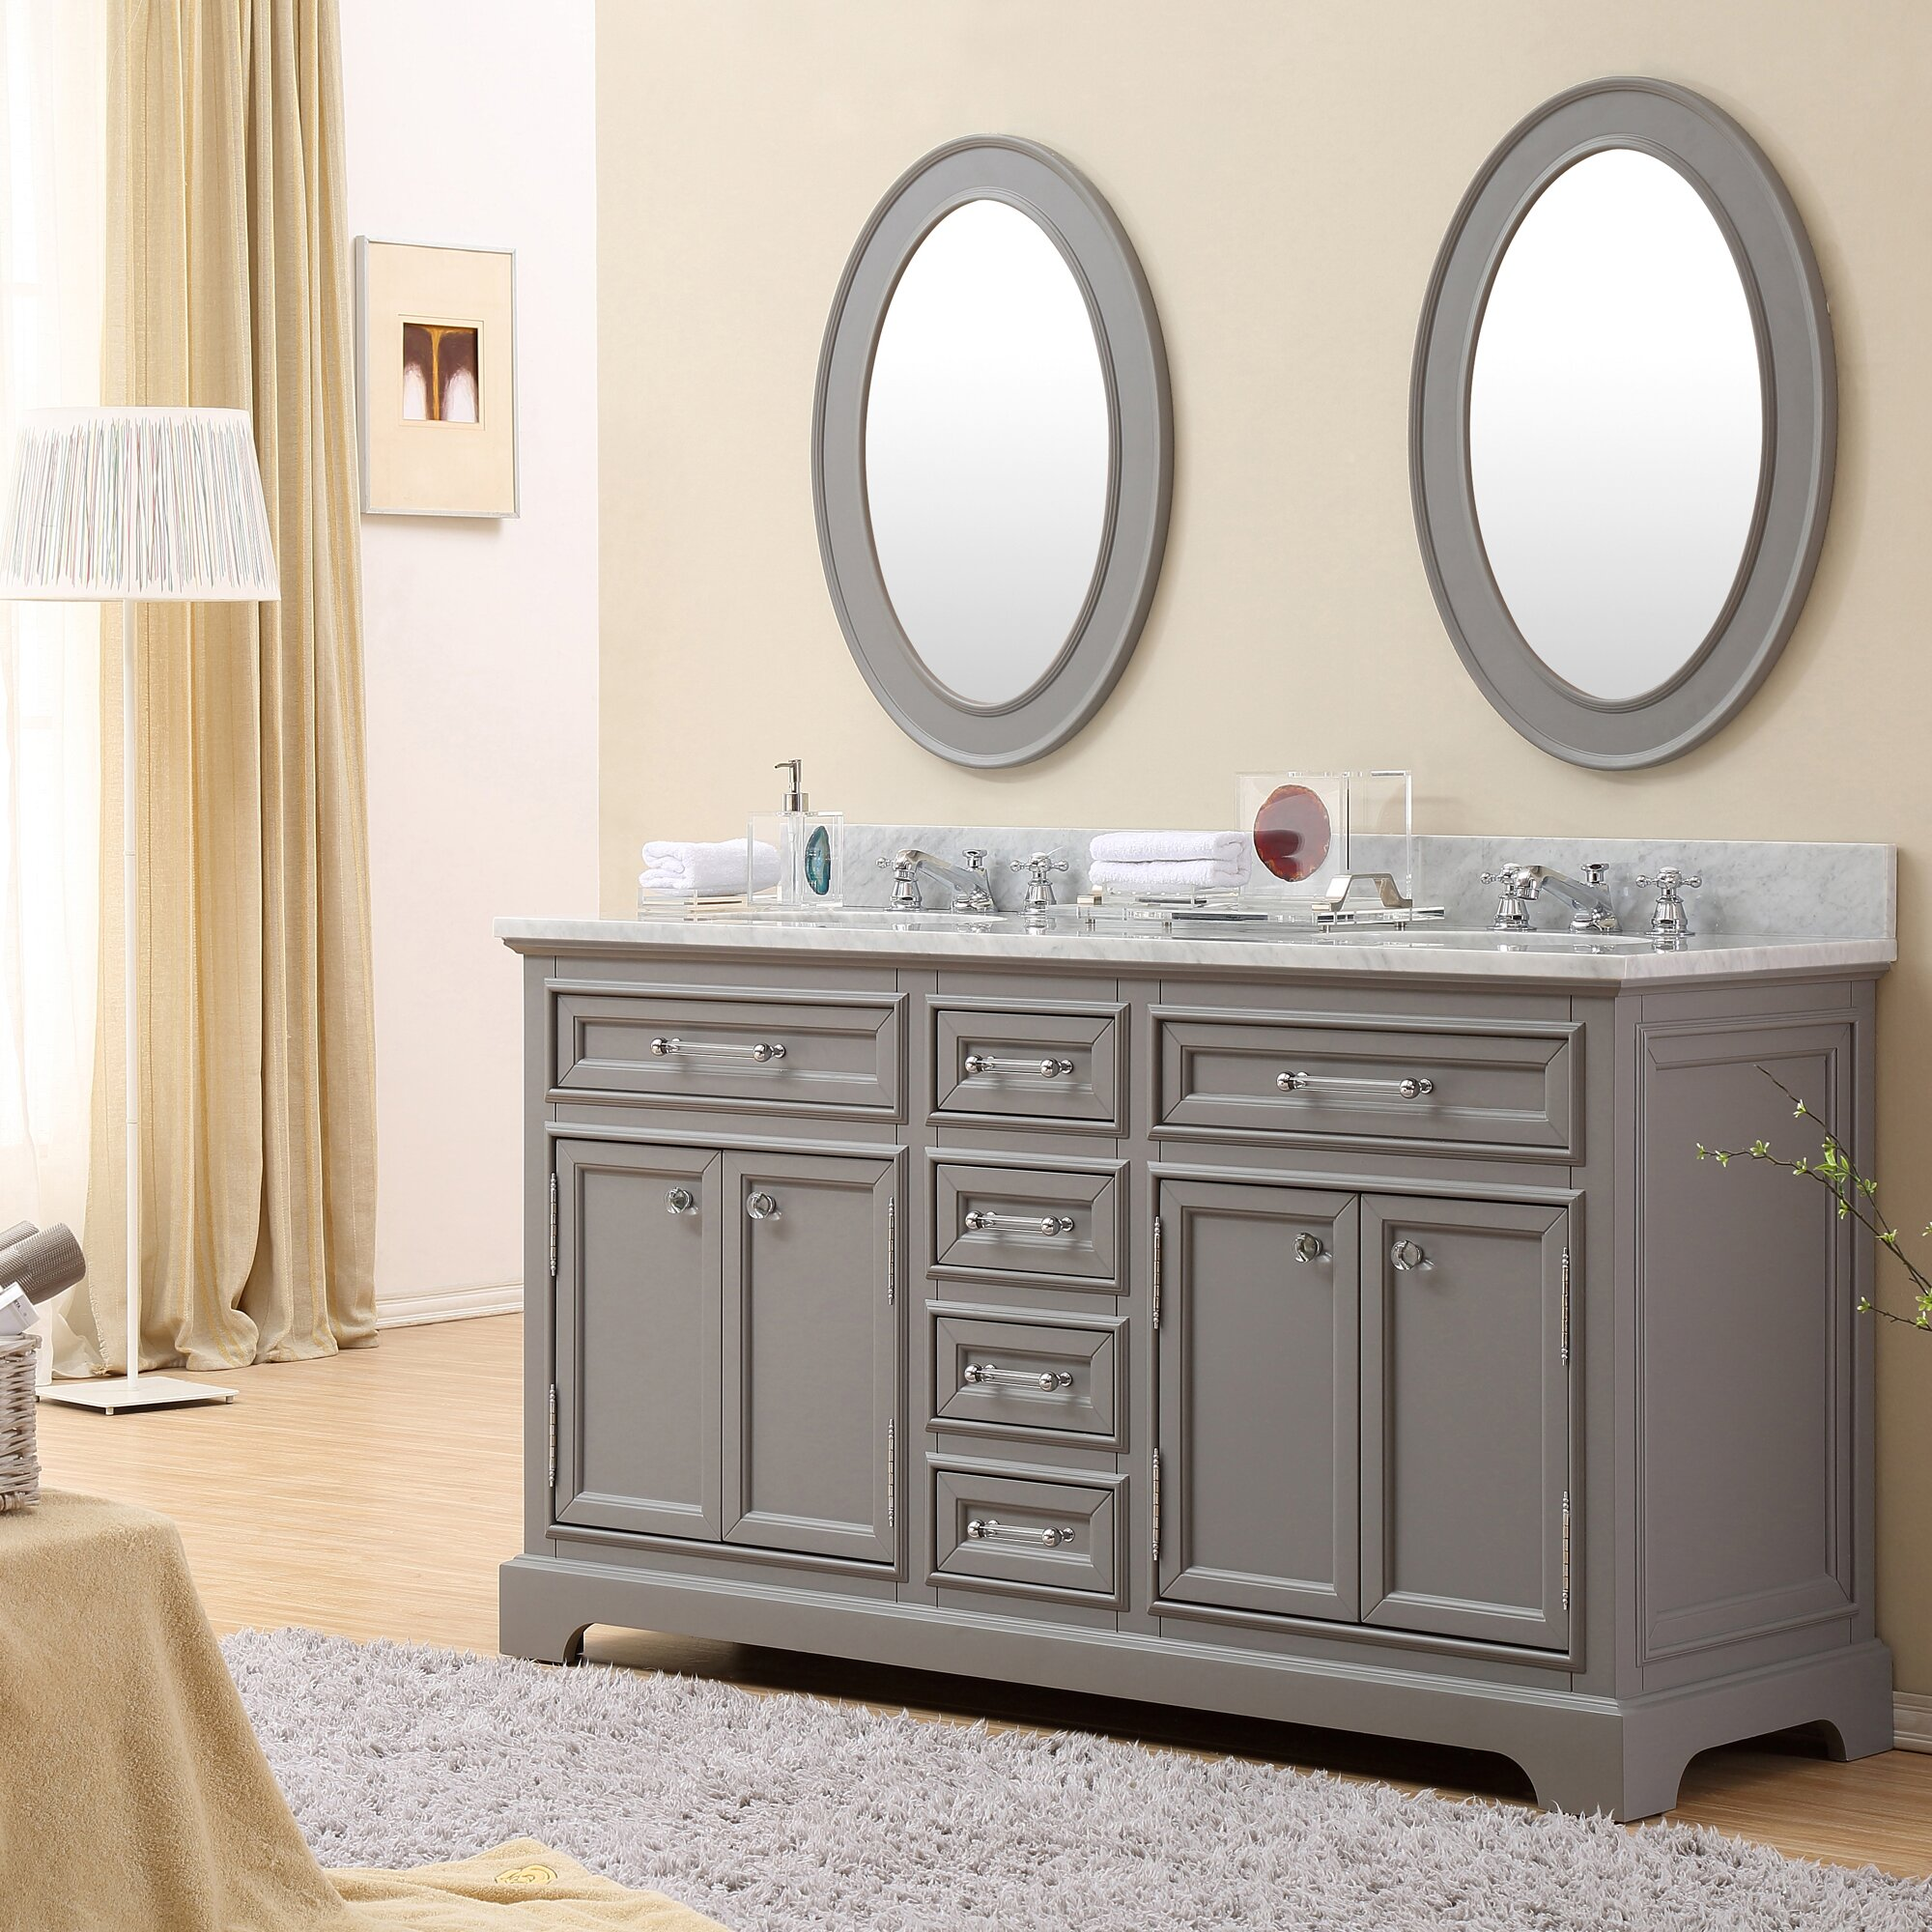 60 Bathroom Cabinet Darby Home Co Colchester 60 Double Sink Bathroom Vanity Set